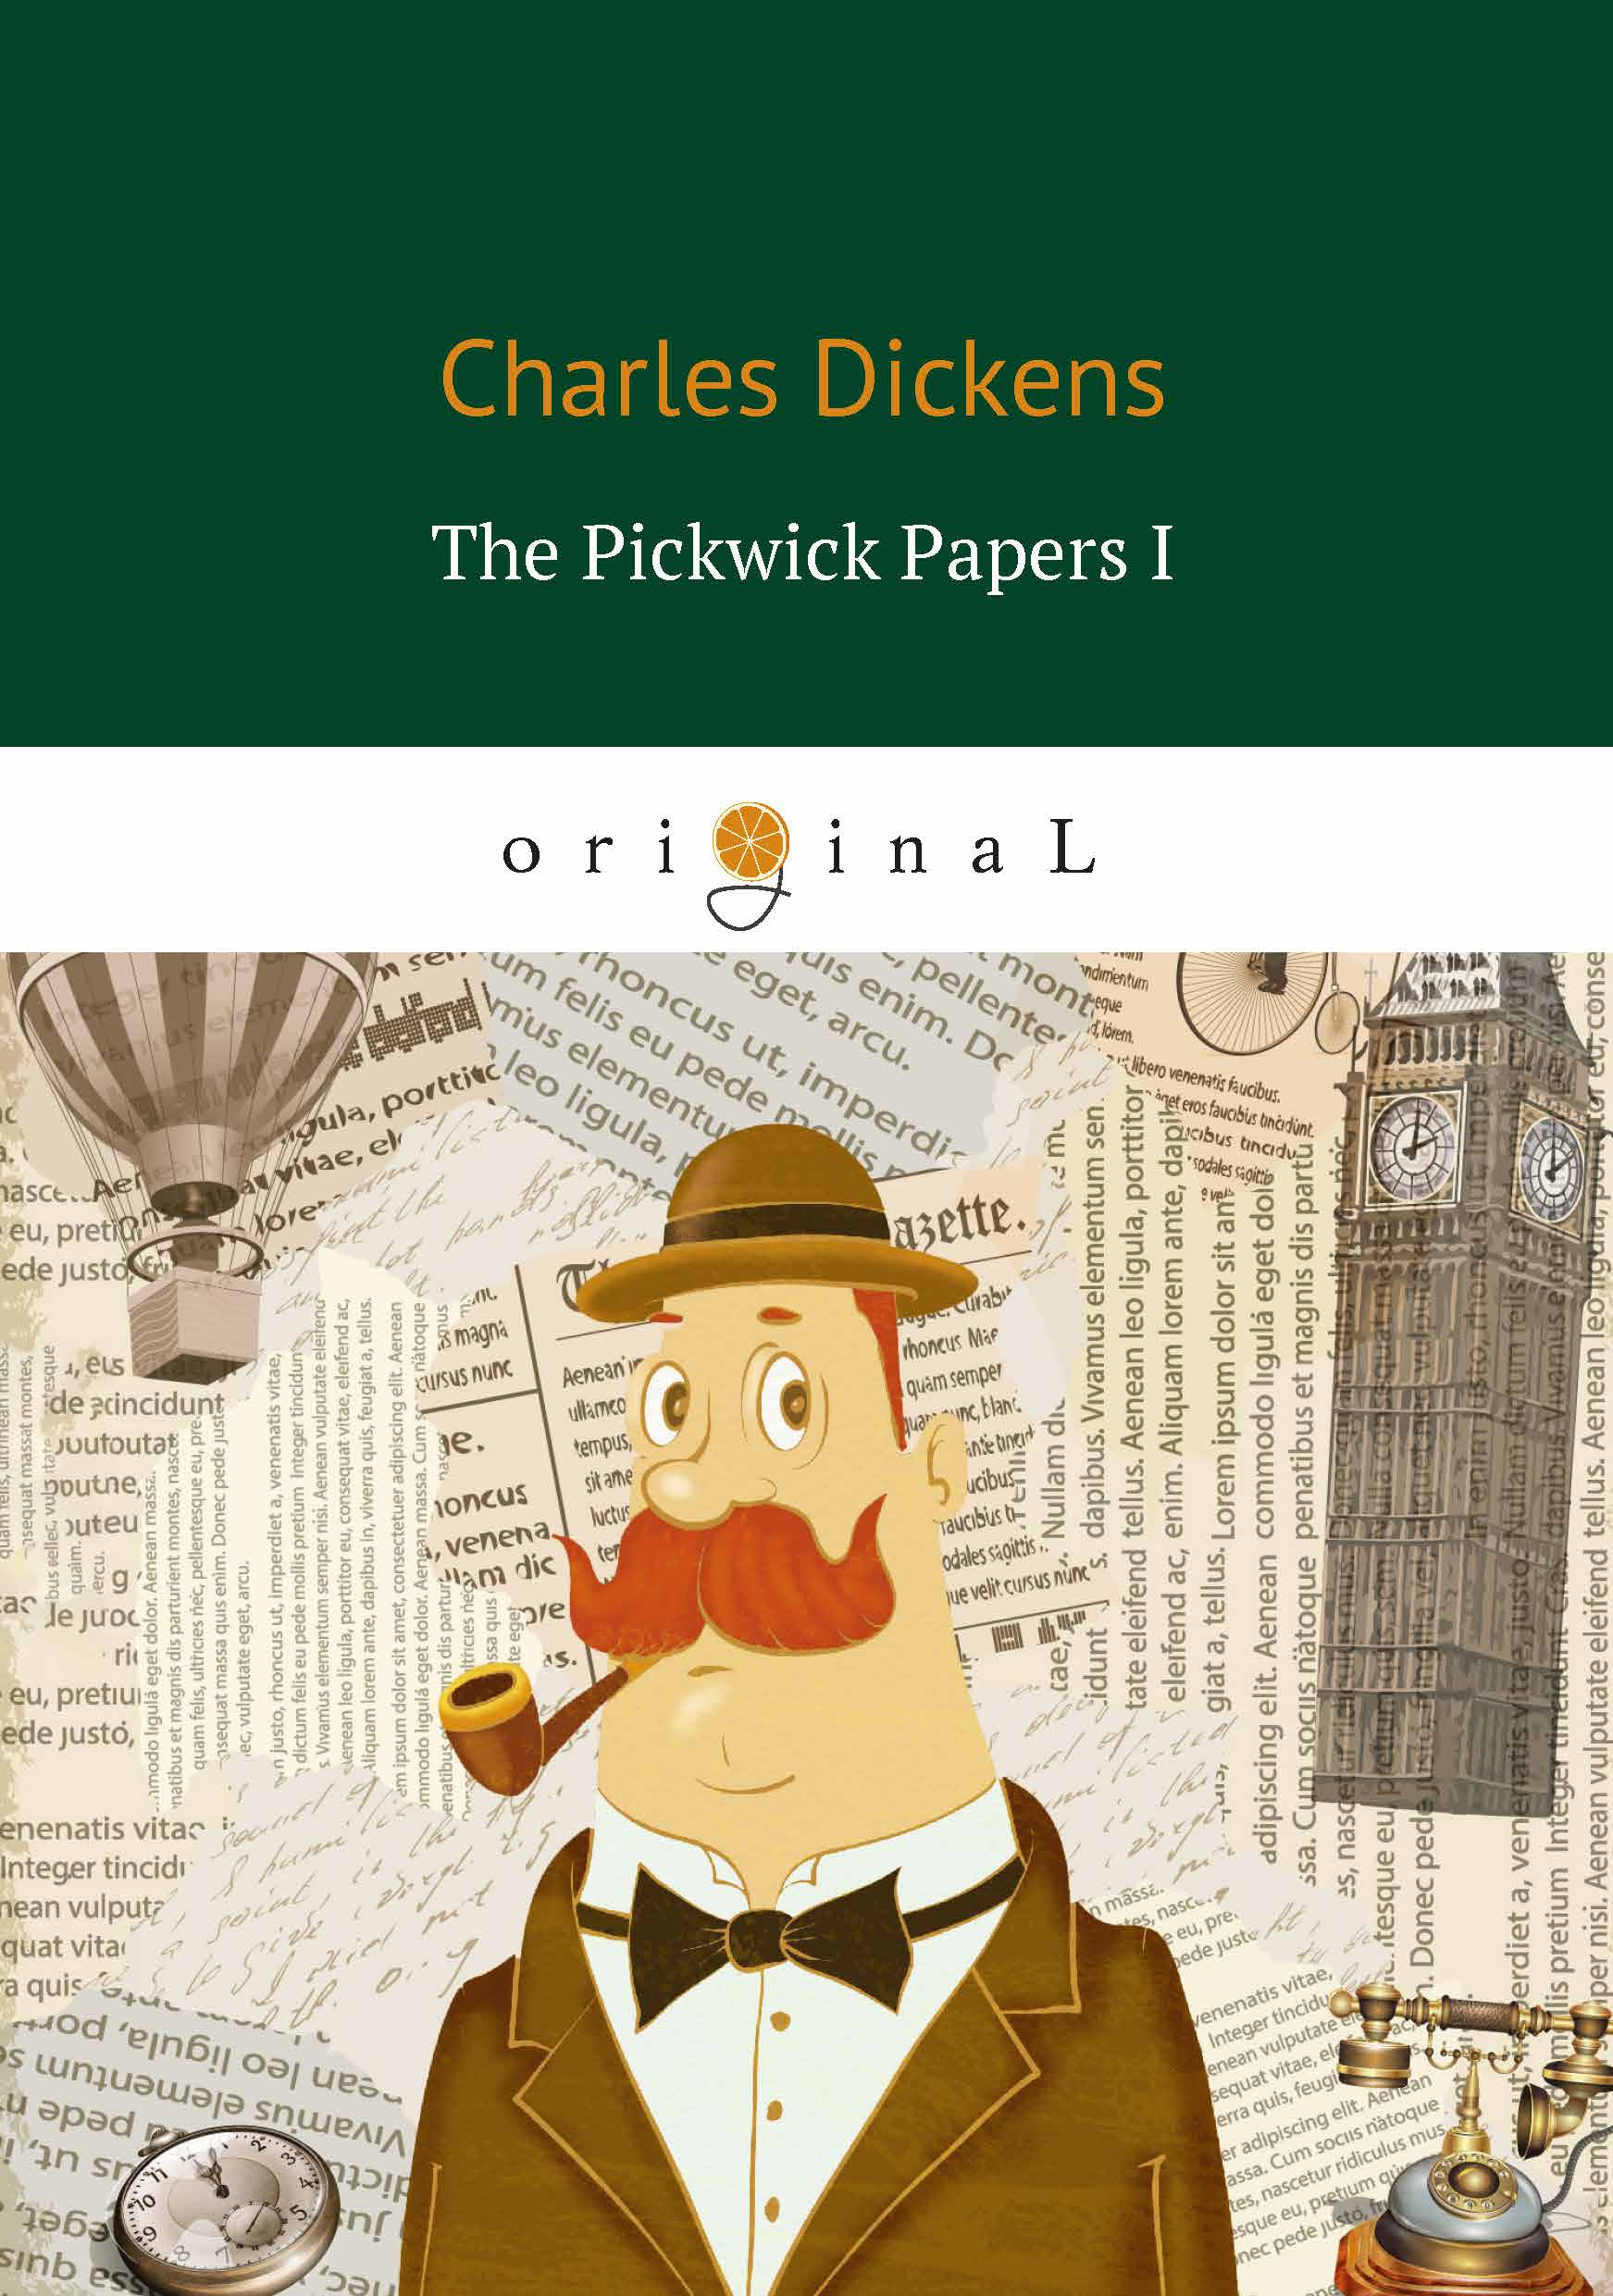 Charles Dickens The Pickwick Papers I